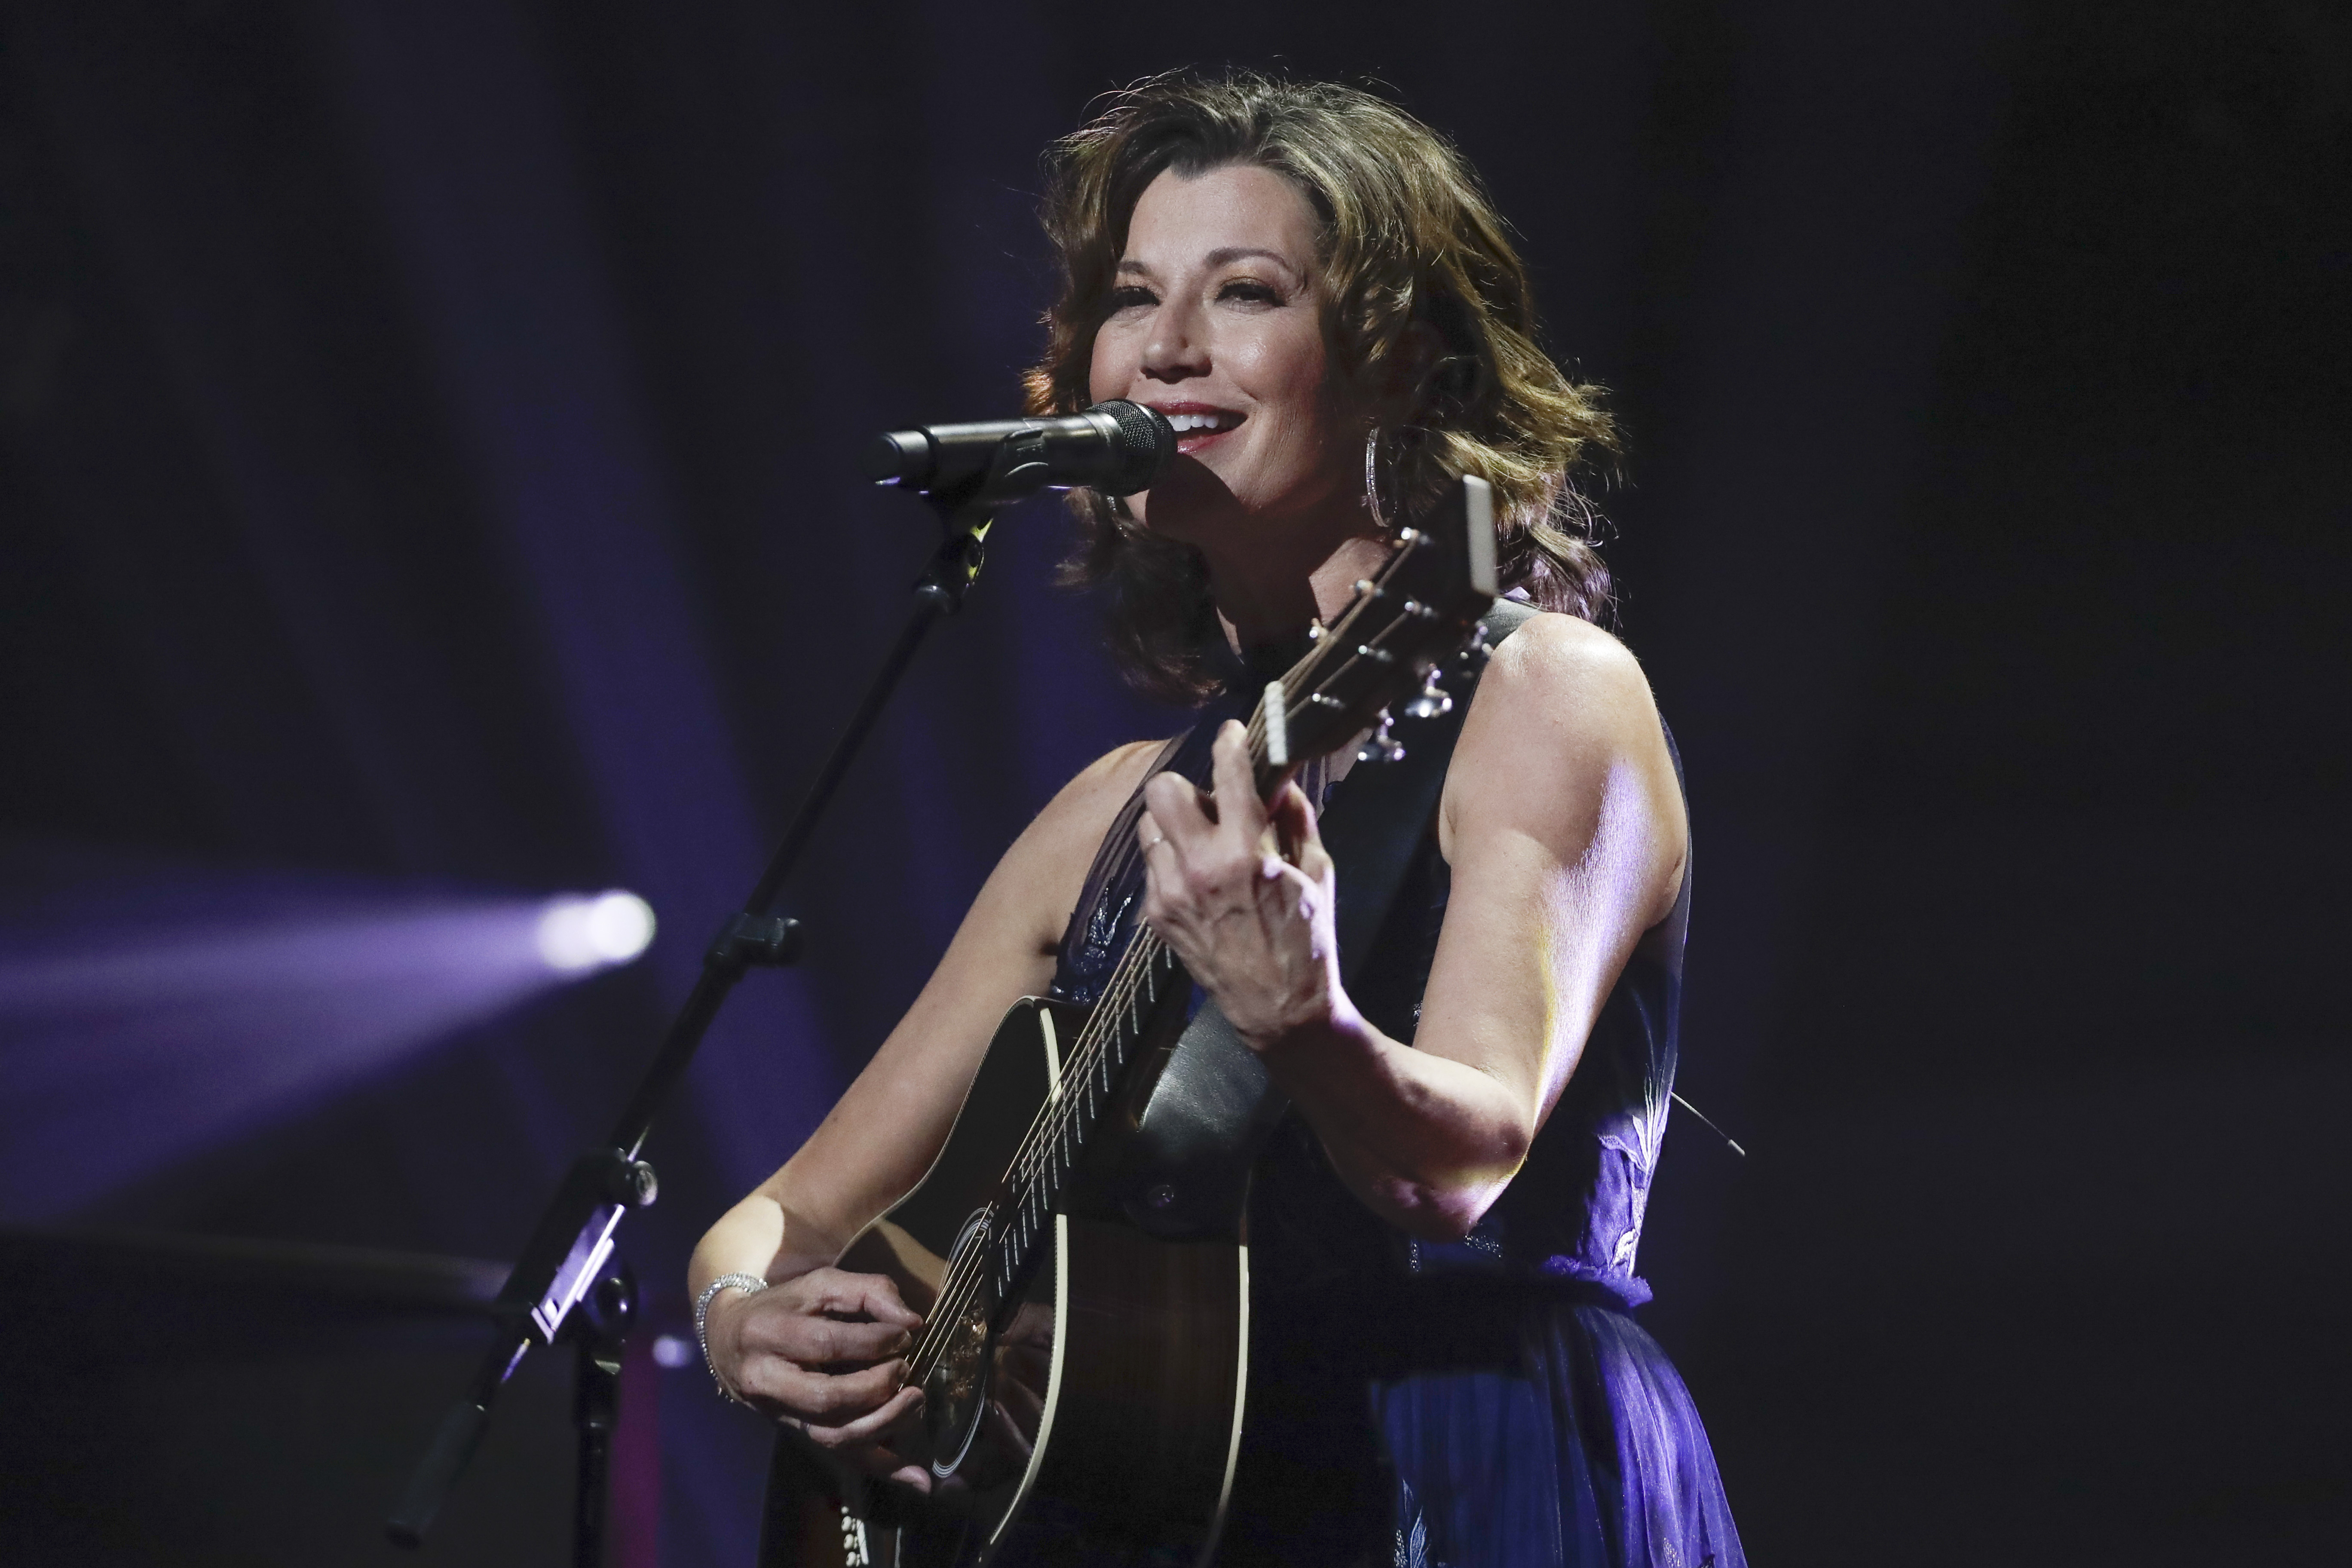 Amy Grant performs during the Dove Awards in Nashville, Tennessee, in 2019.